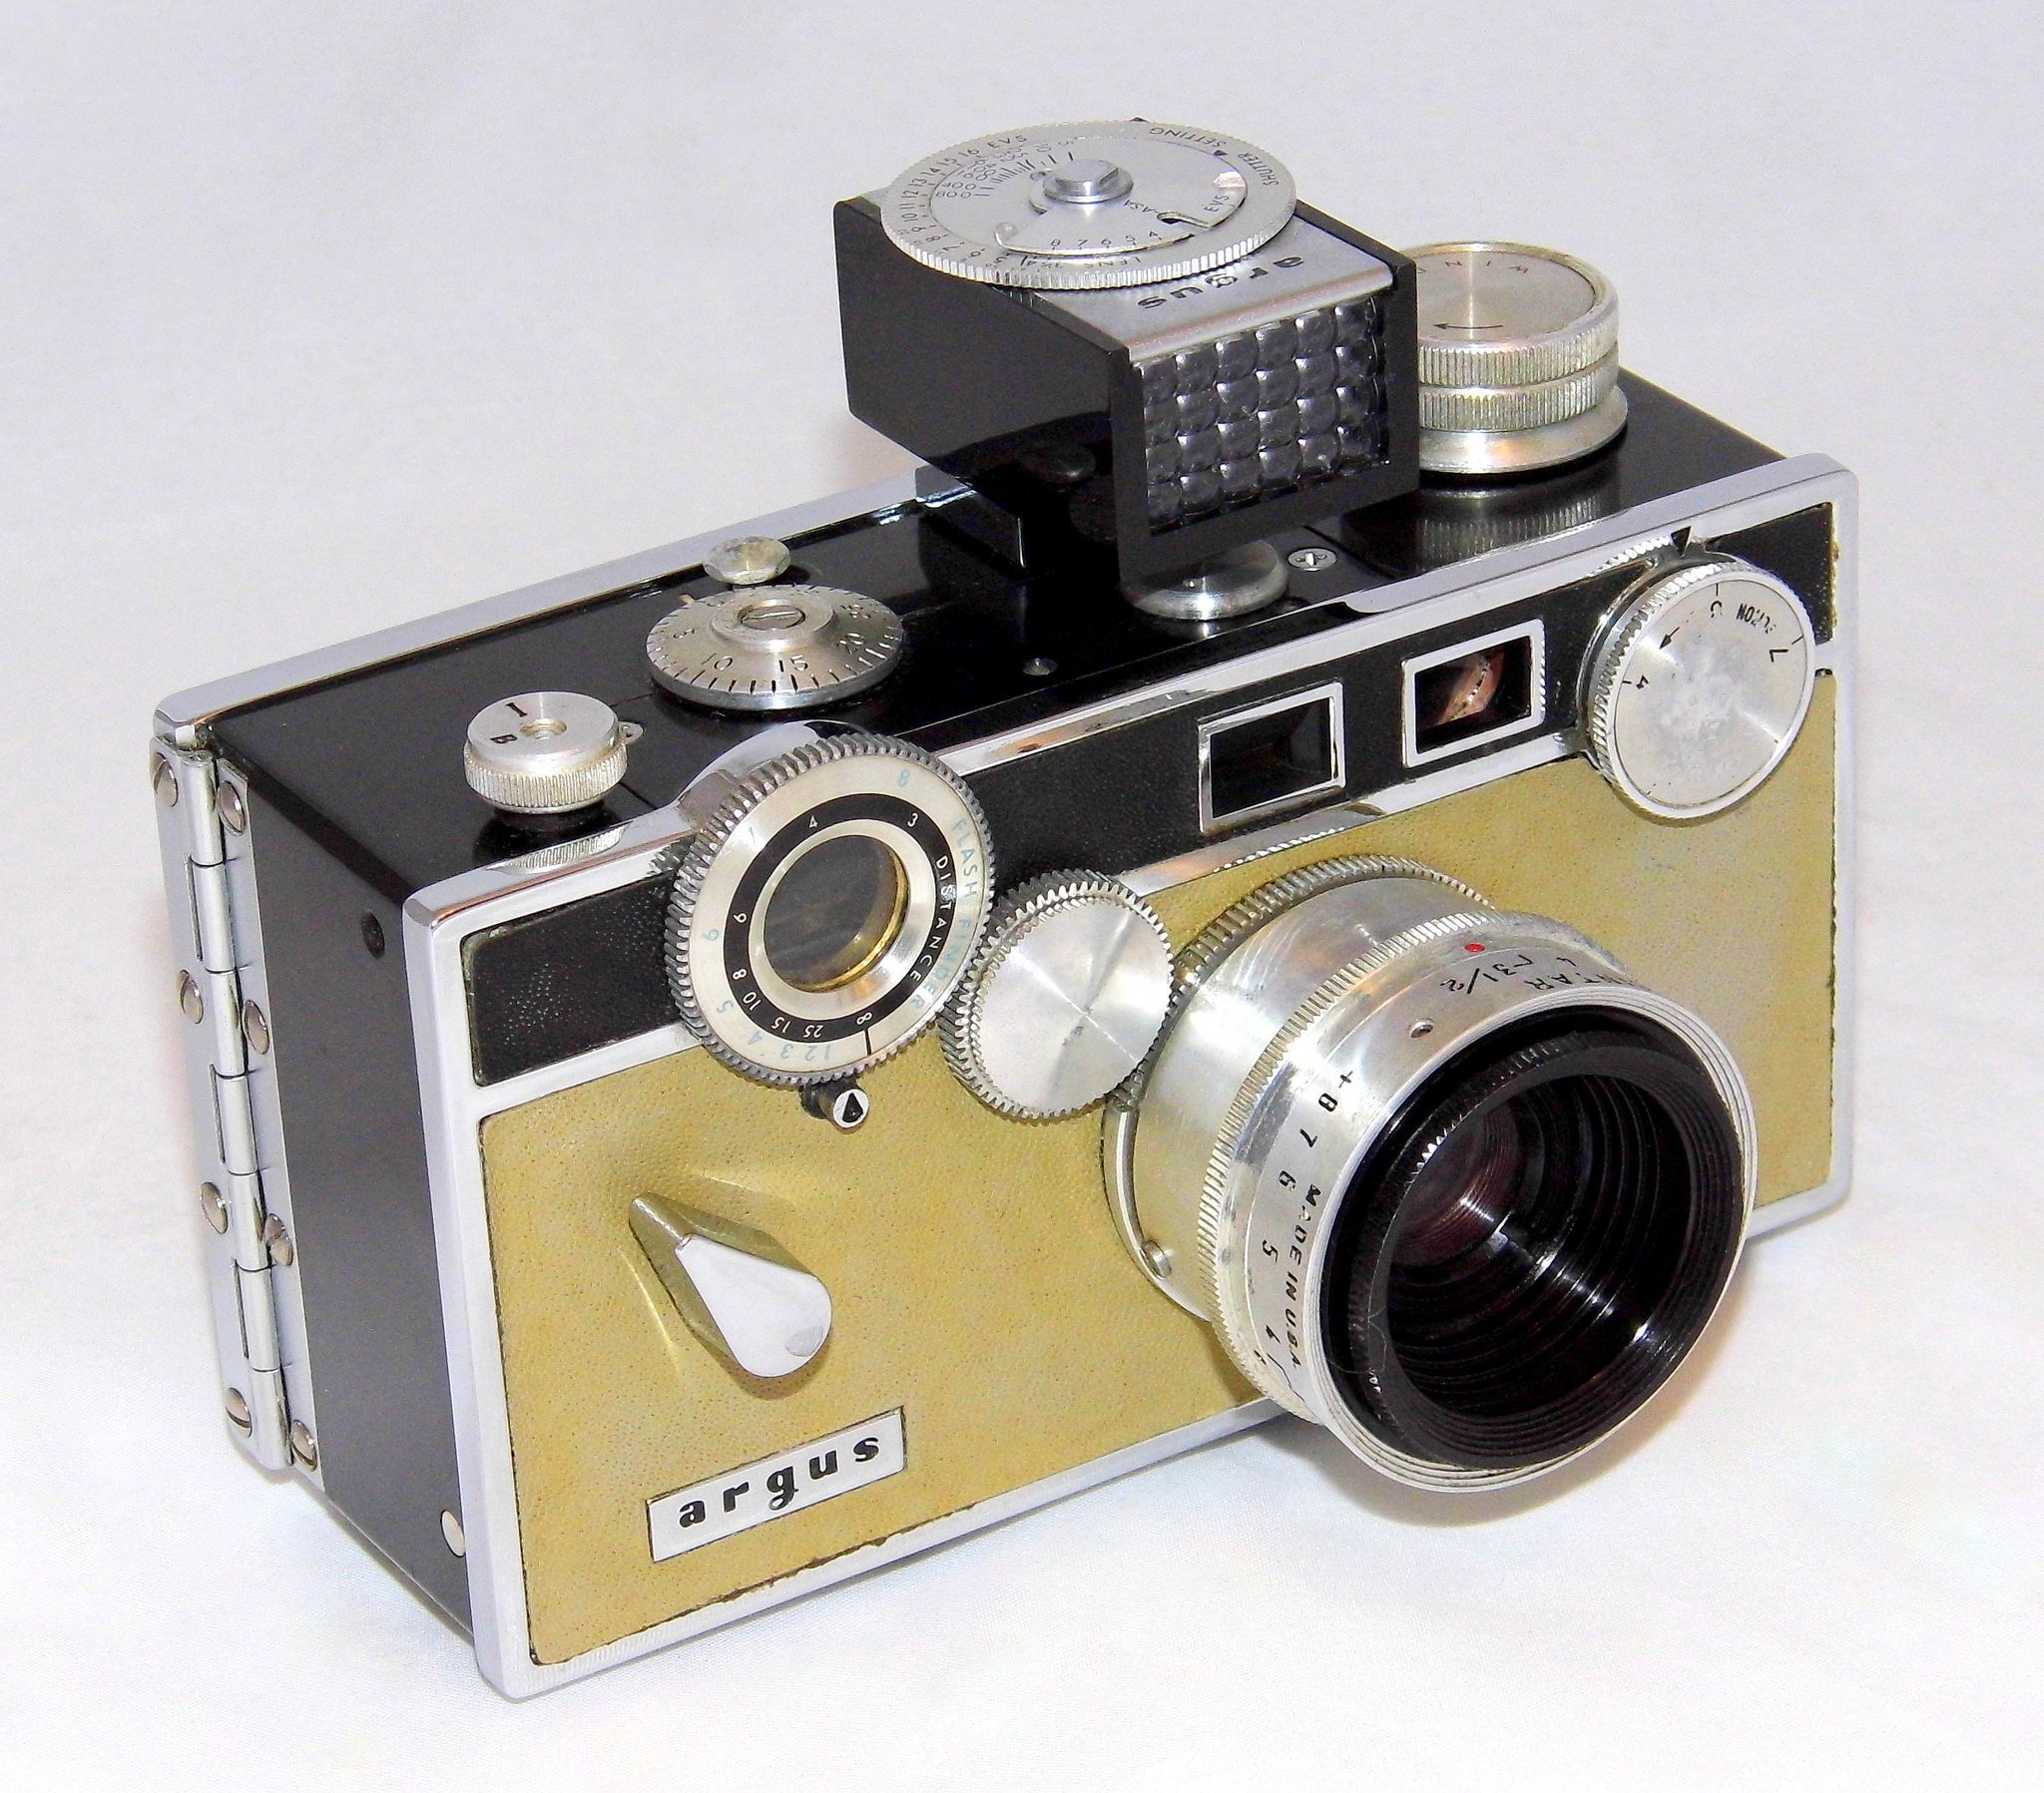 https://flic.kr/p/QYLtRV | Vintage Argus C3 Matchmatic 35mm Rangefinder Camera, With Attached Argus LC-3 Light Meter, Camera Known As The Brick, Light Meter Made In Japan, Camera Made In USA, Produced From 1958 To 1966